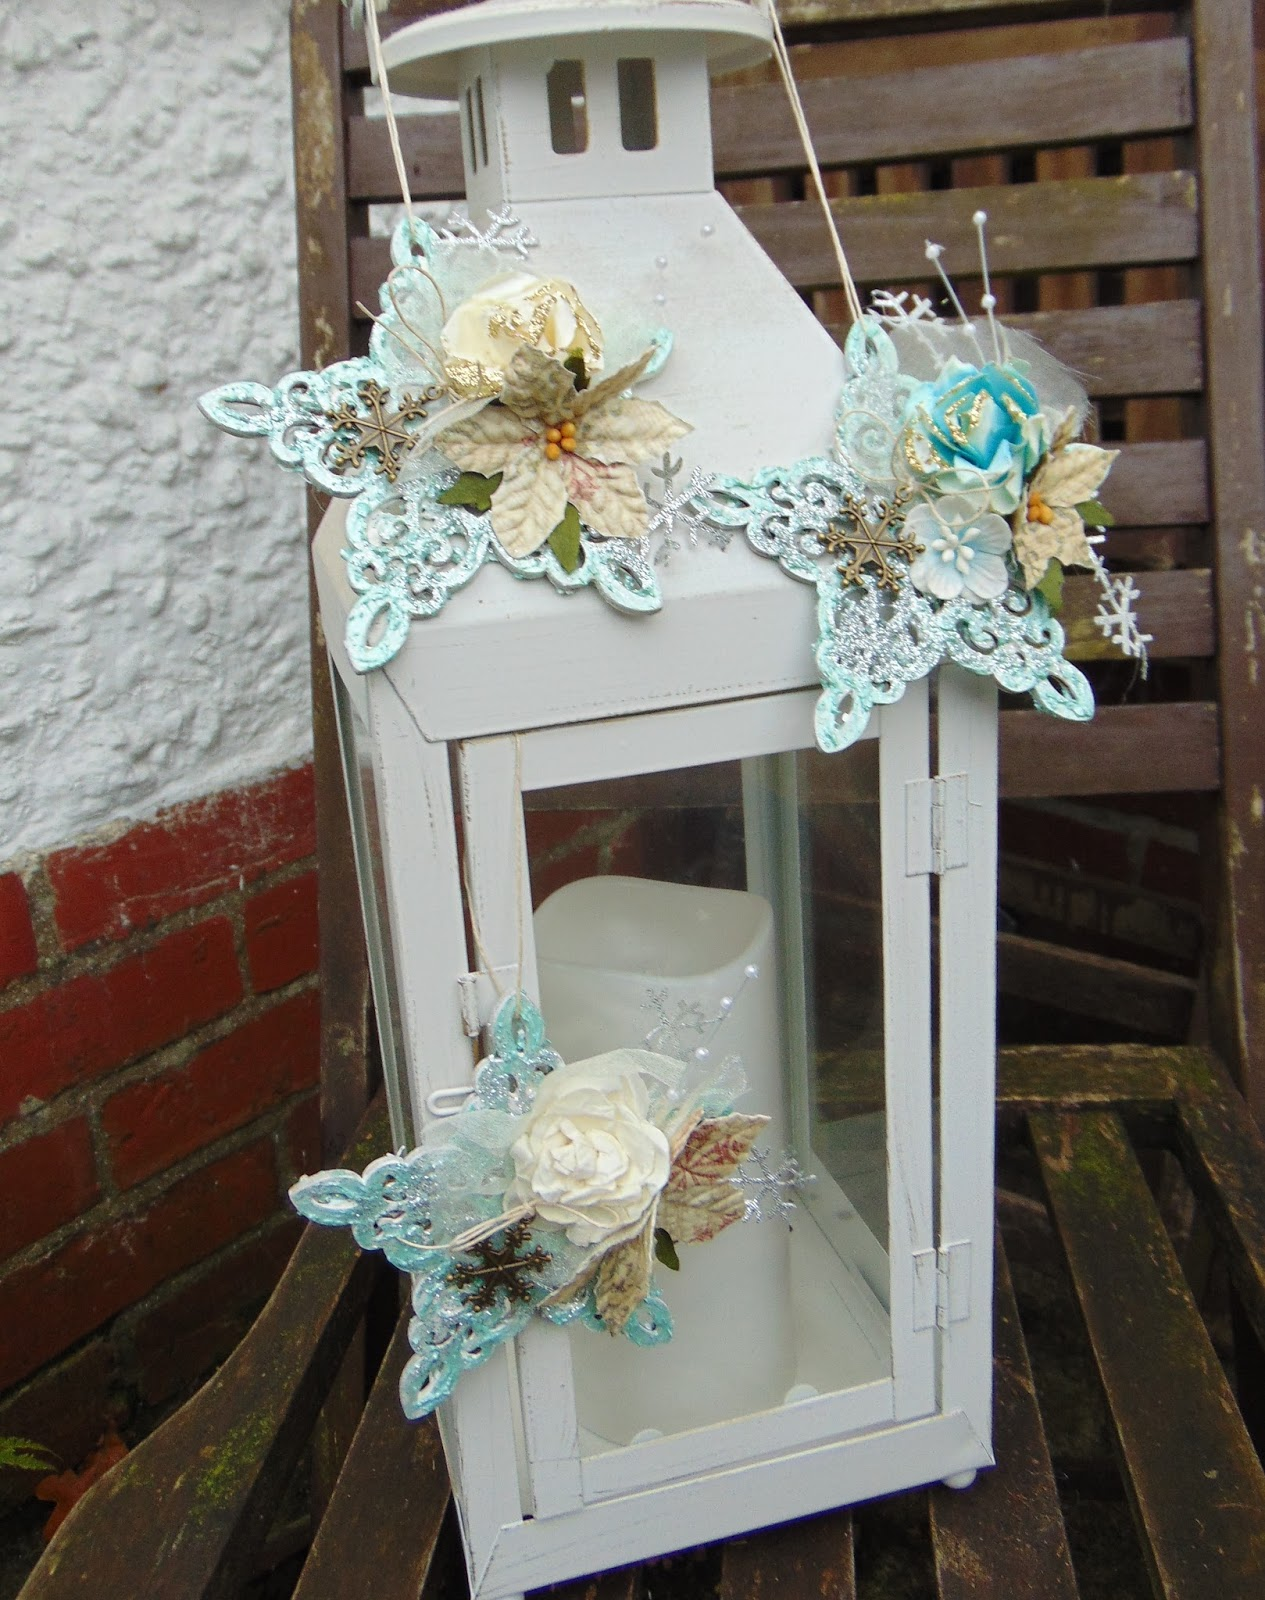 My Crafty Madness: Shabby Chic Christmas Decorations